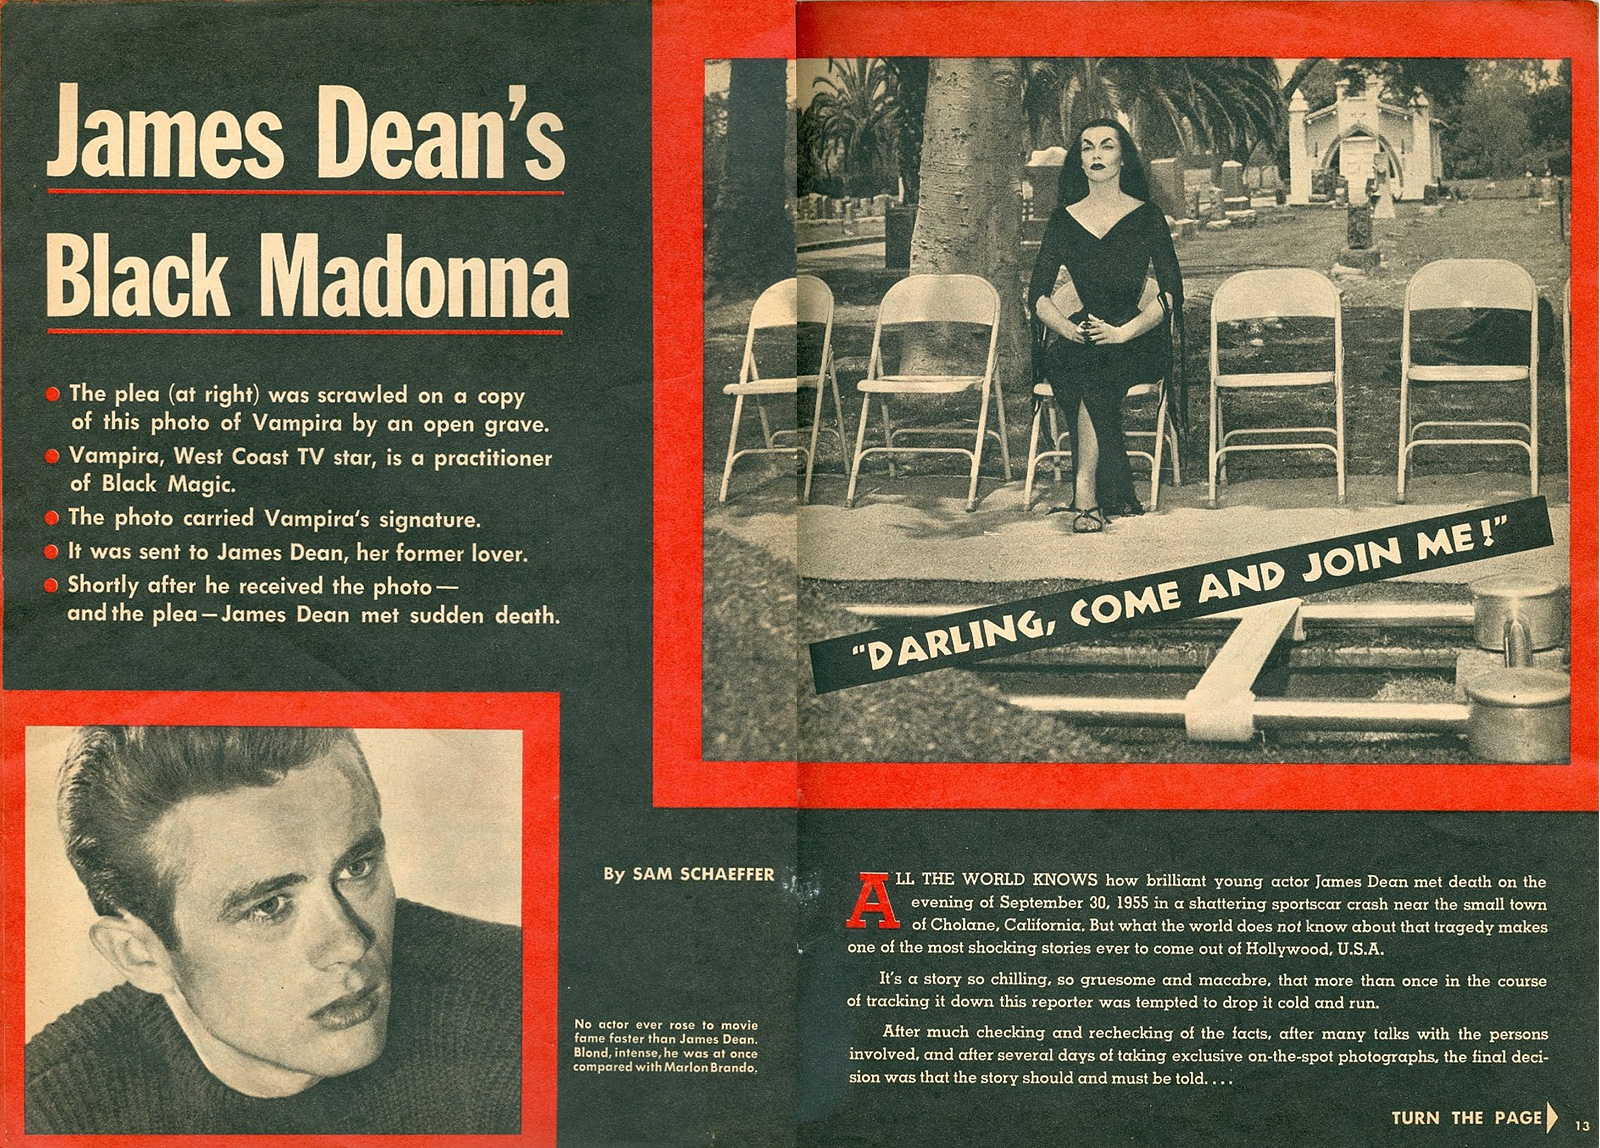 The Mysterious Horror Hostess that Reportedly Cursed James Dean